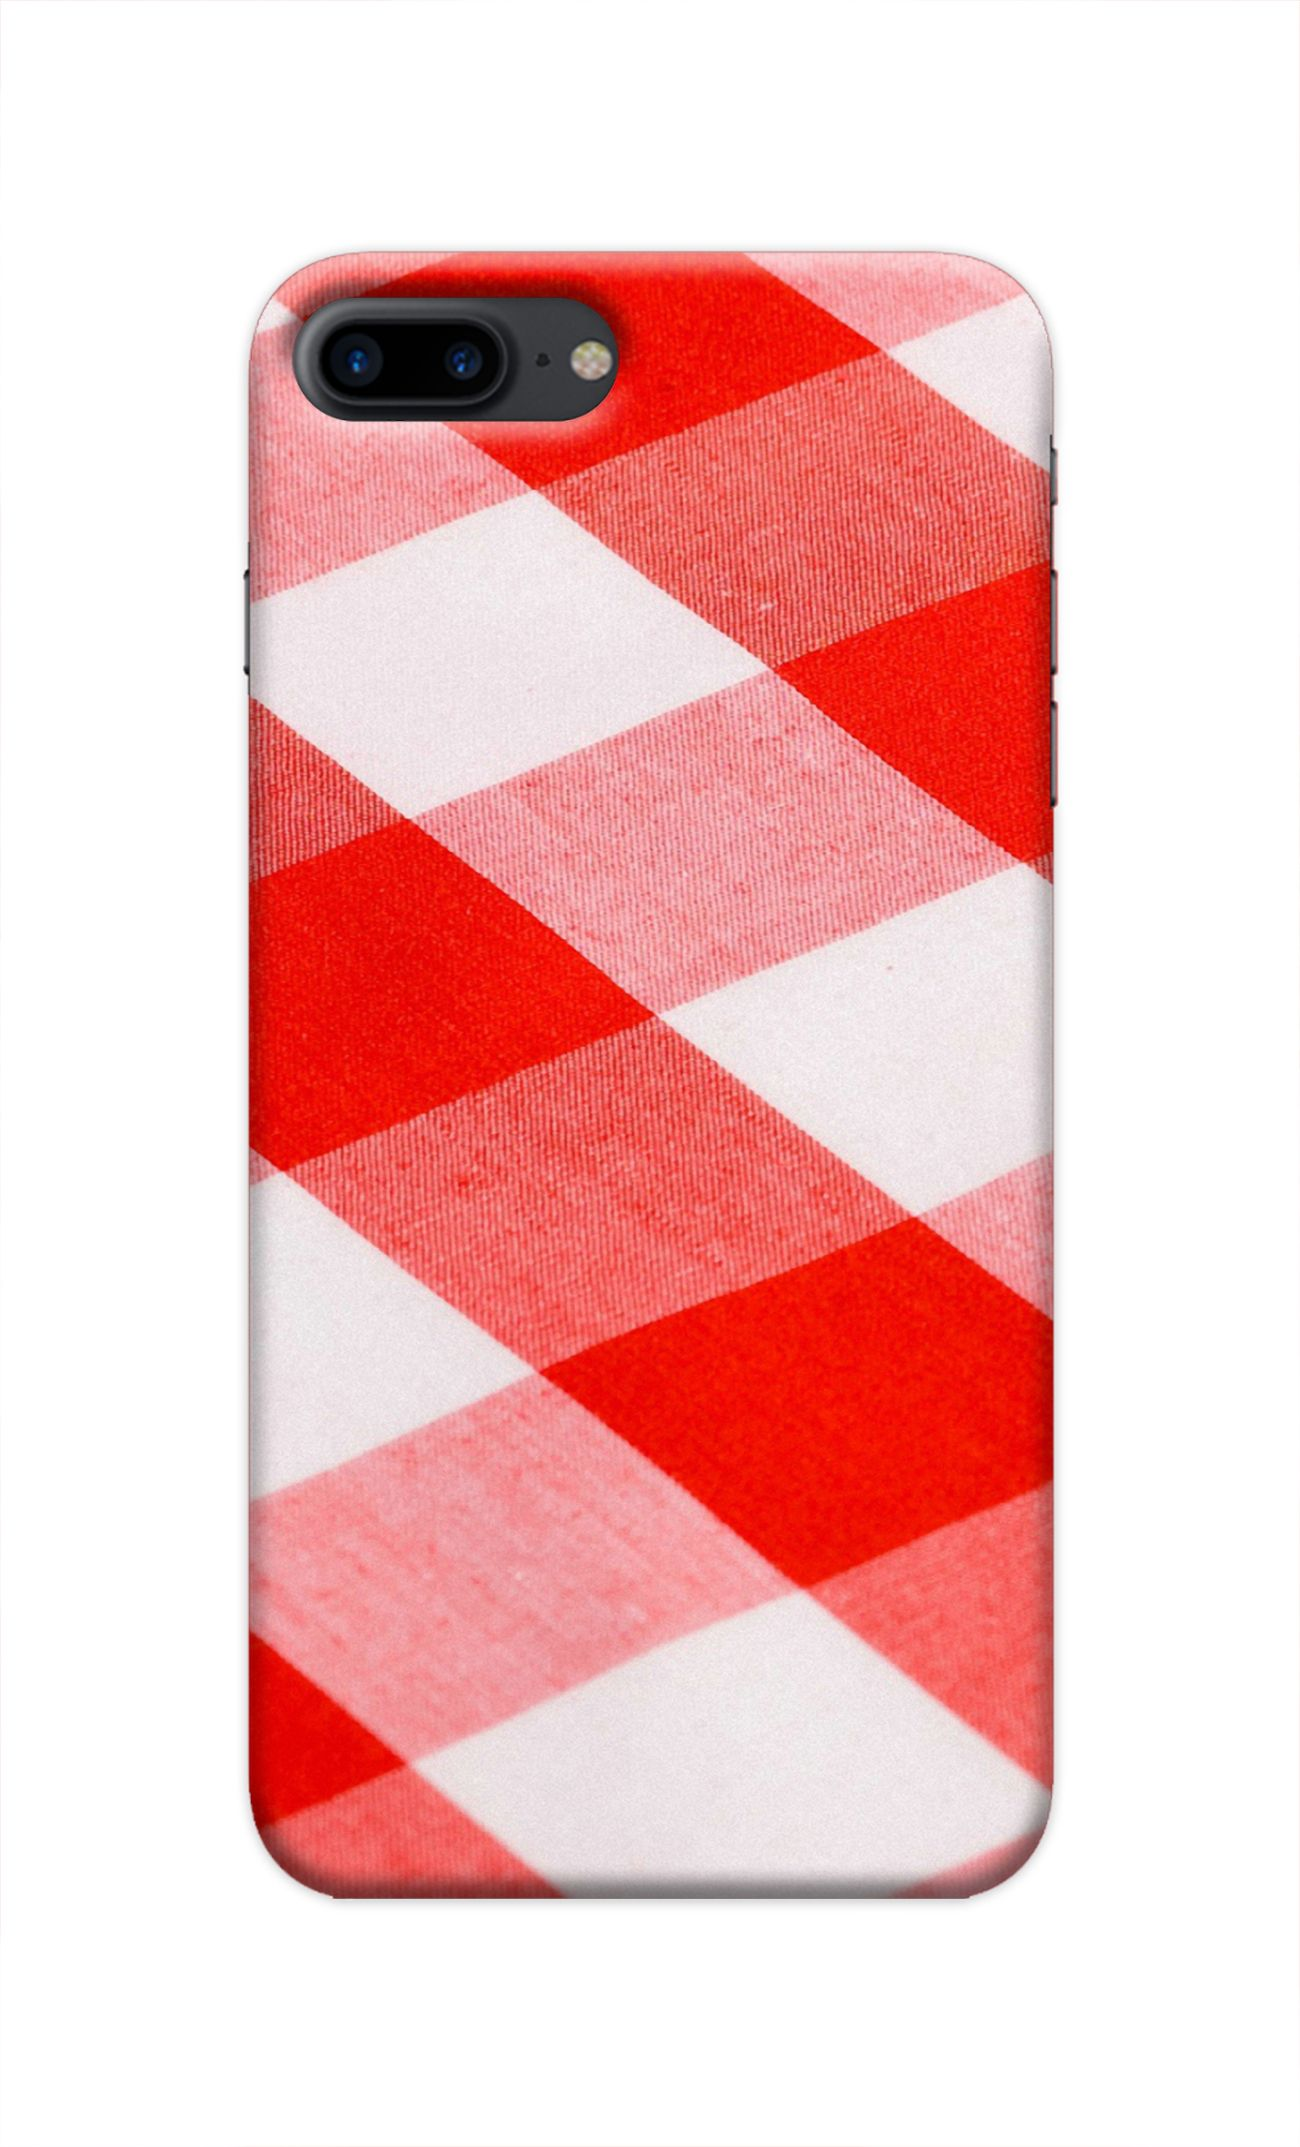 Apple iPhone 7 Plus Printed Cover By Tecozo 3d Printed Cover